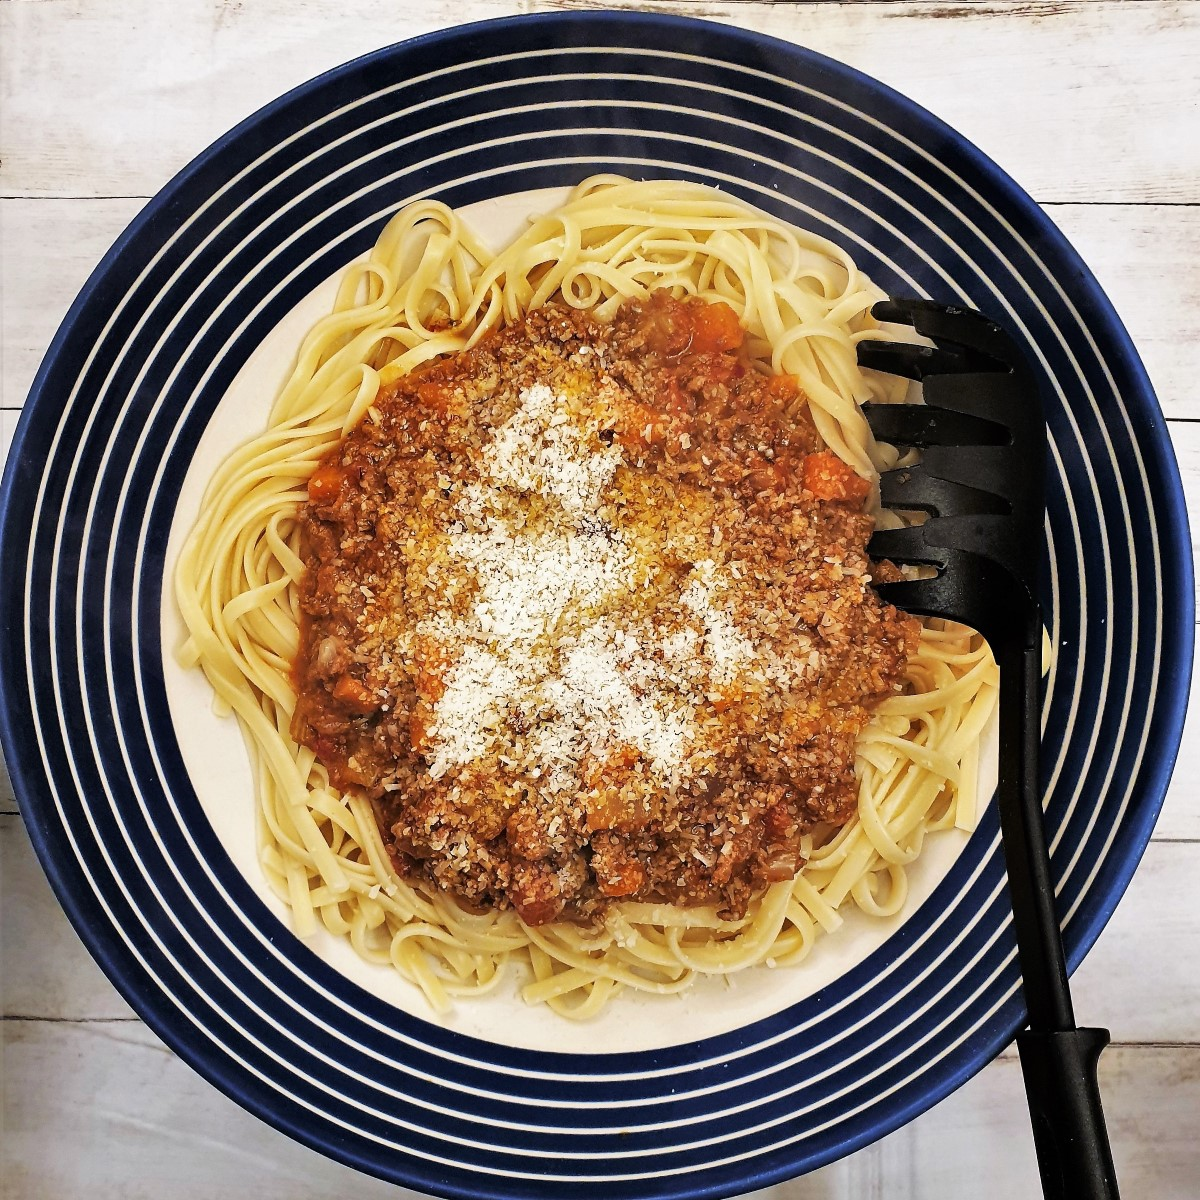 Over head shot of a serving bowl filled with lamb ragu.